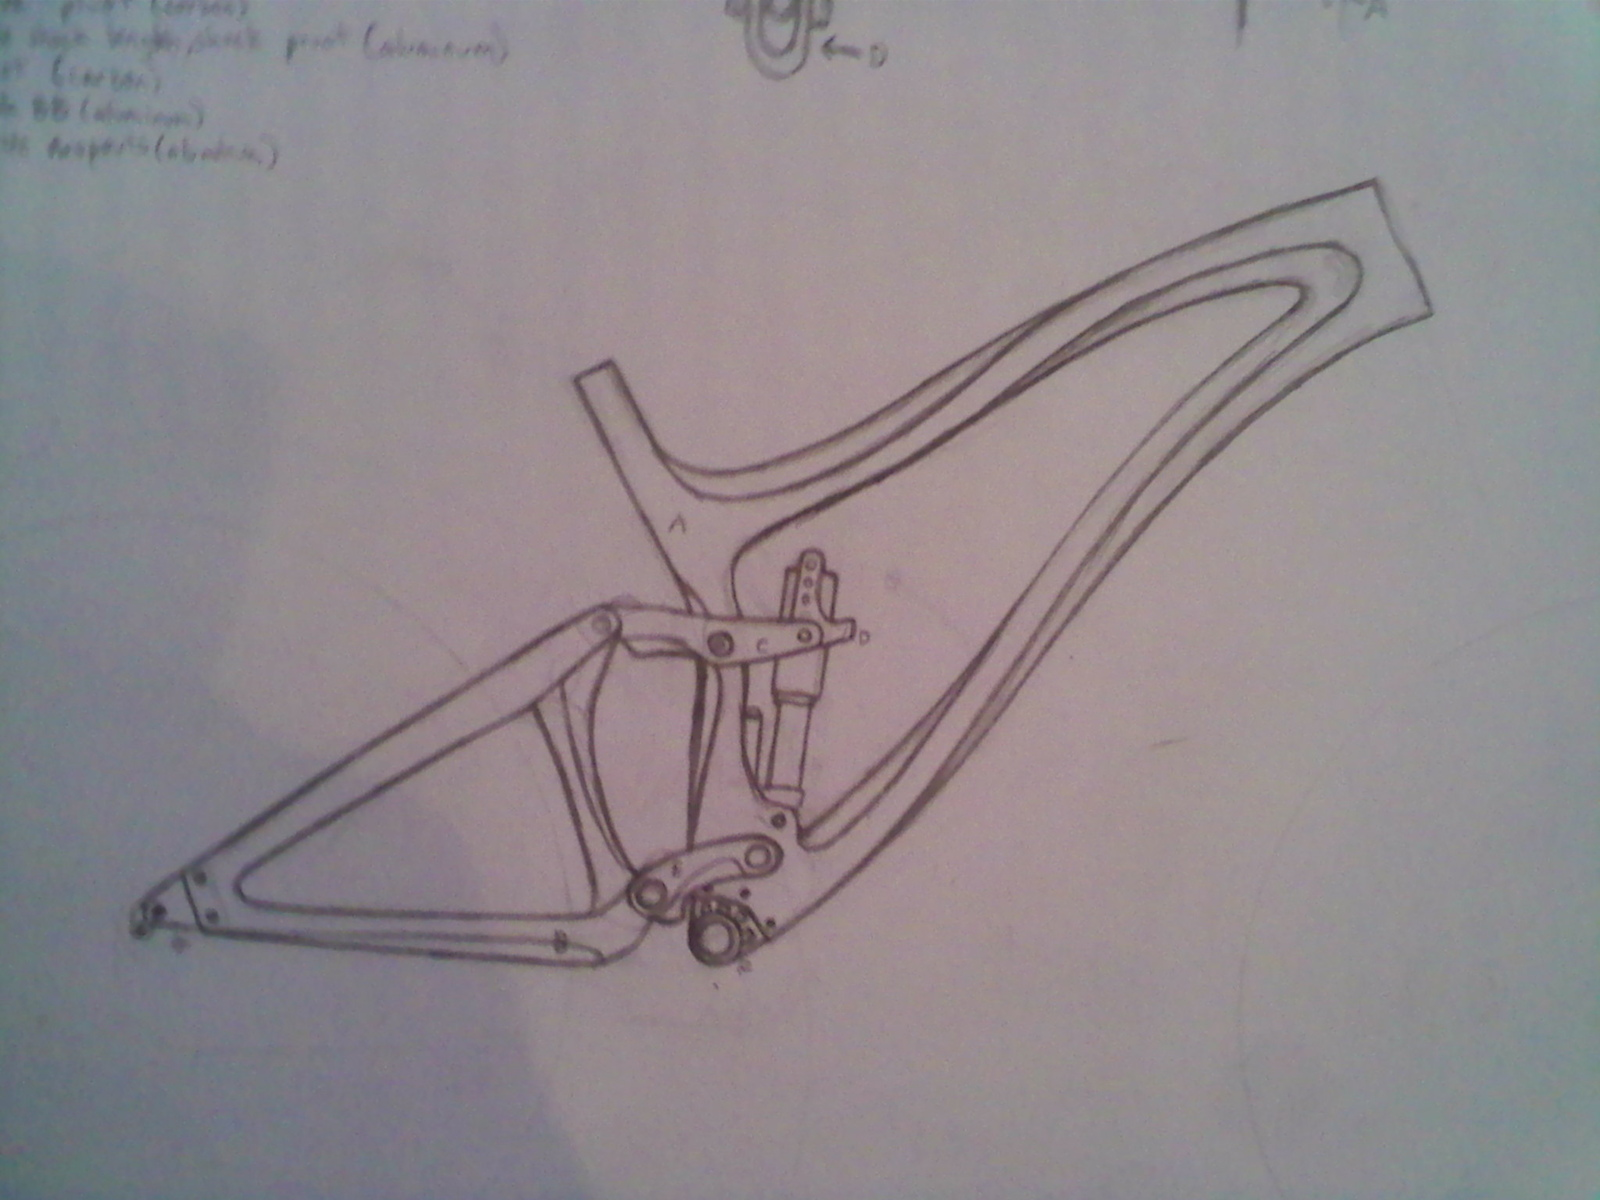 this is mainly just putting the idea to paper so i dont forget parts of it. its not to scale, and the pivots are just a general layout of the angles and lengths i want. Most of my thought has gone into the bends and creases in the carbon fiber of the main triangle in the interest of spreading compression, pulling, twisting forces into stronger more flexible areas of the frame, aswell as the direction of force from the pivots and shock mounts. i haven't finished the rear triangle yet this is a general shape of it.